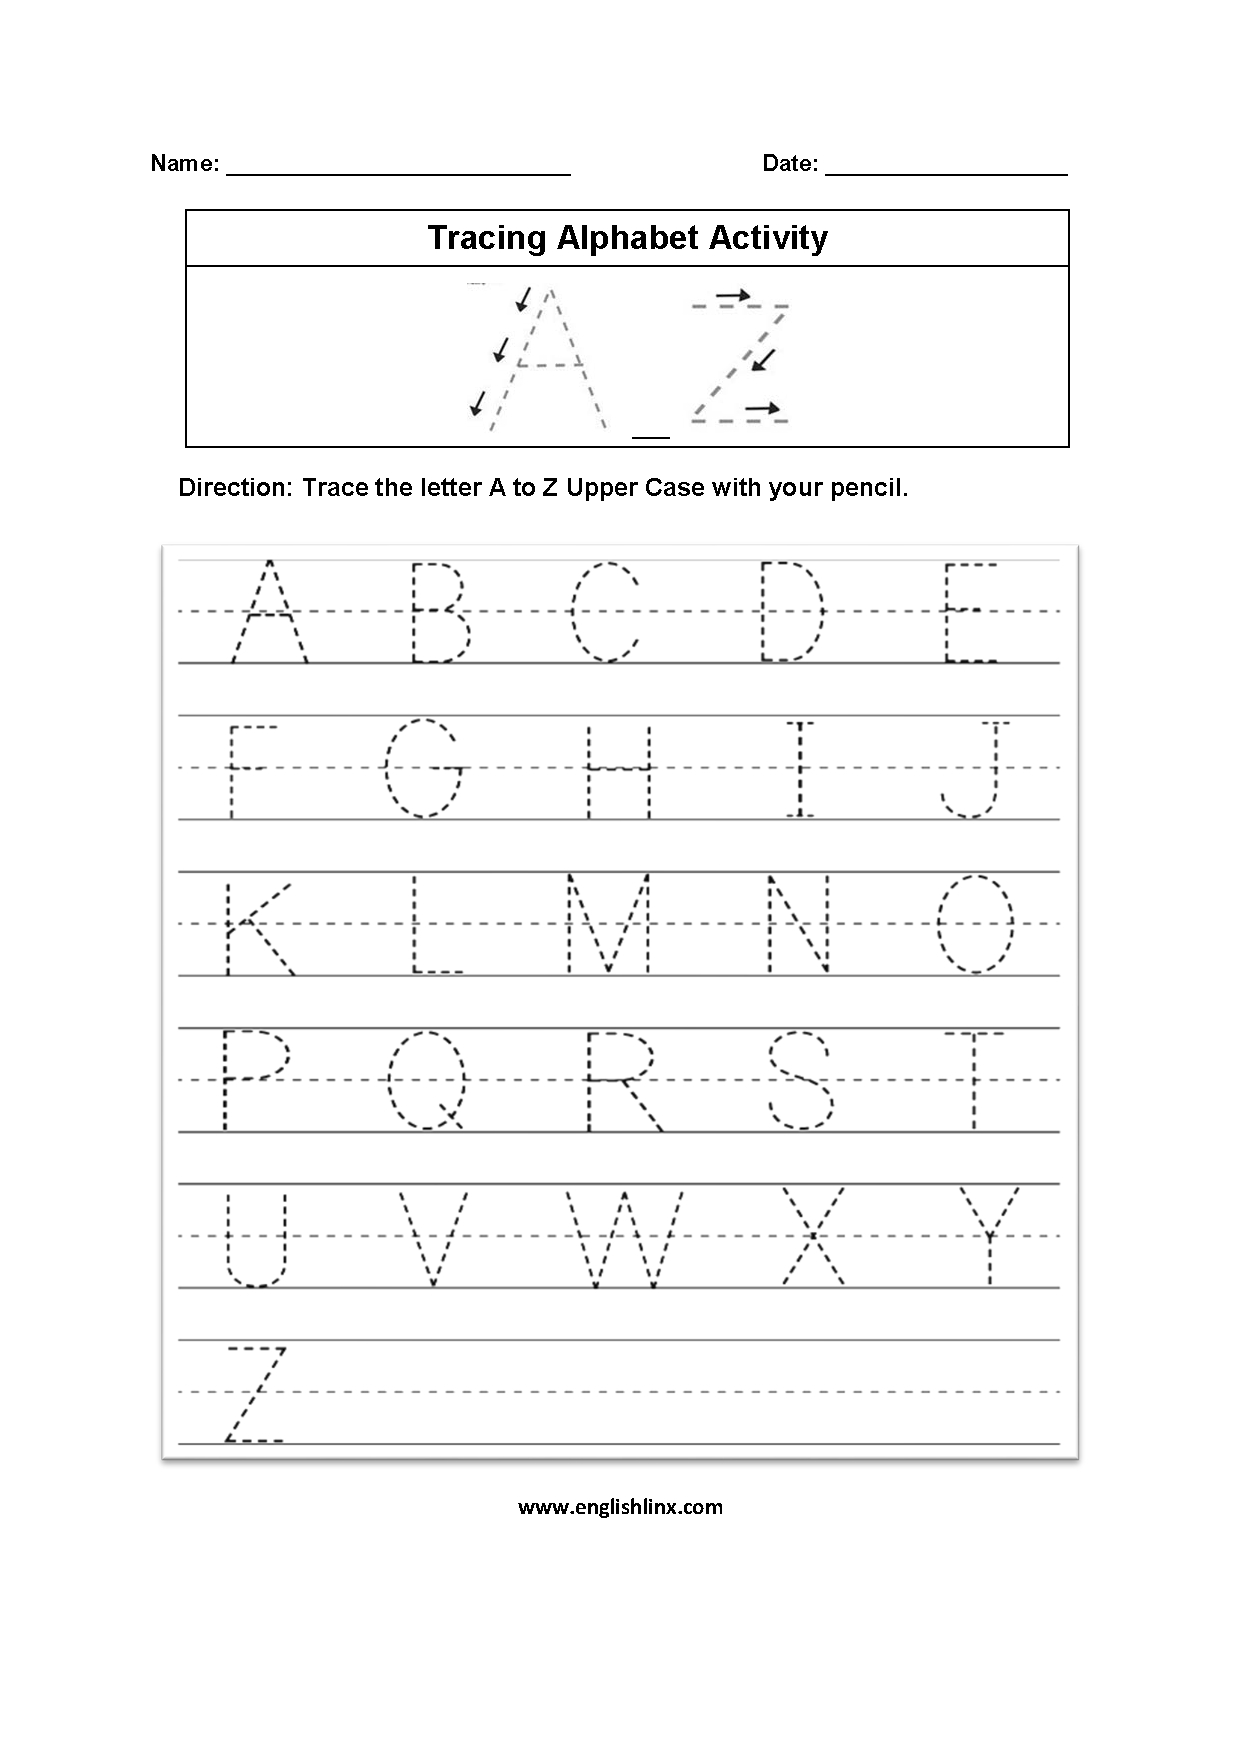 Alphabet Worksheets | Tracing Alphabet Worksheets with Letter Tracing Worksheets Pdf A-Z